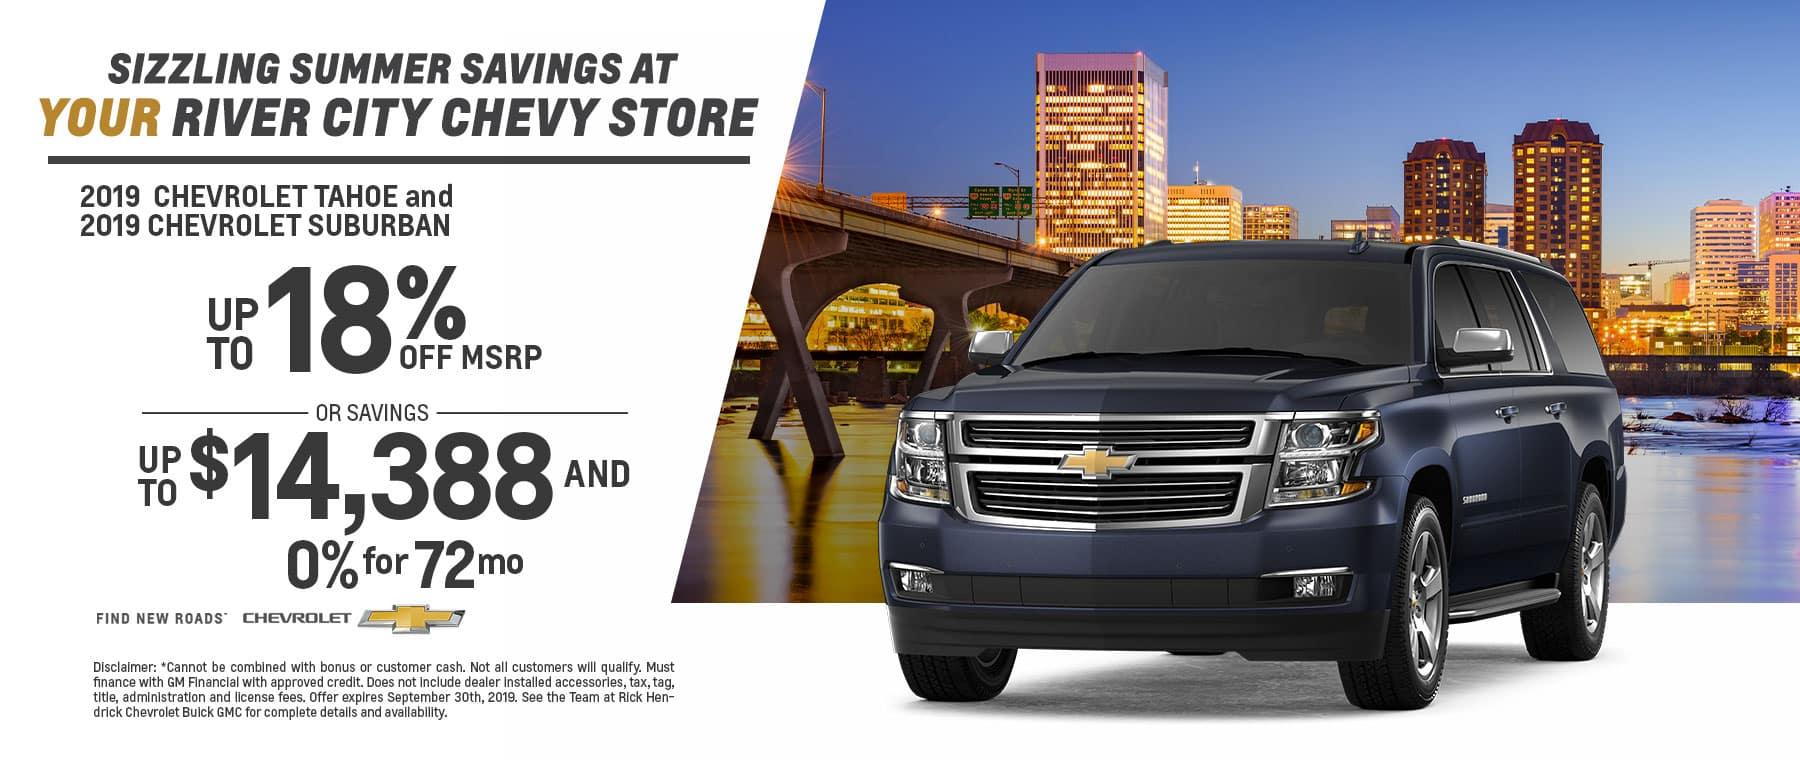 Up to 18% off the Chevy Tahoe